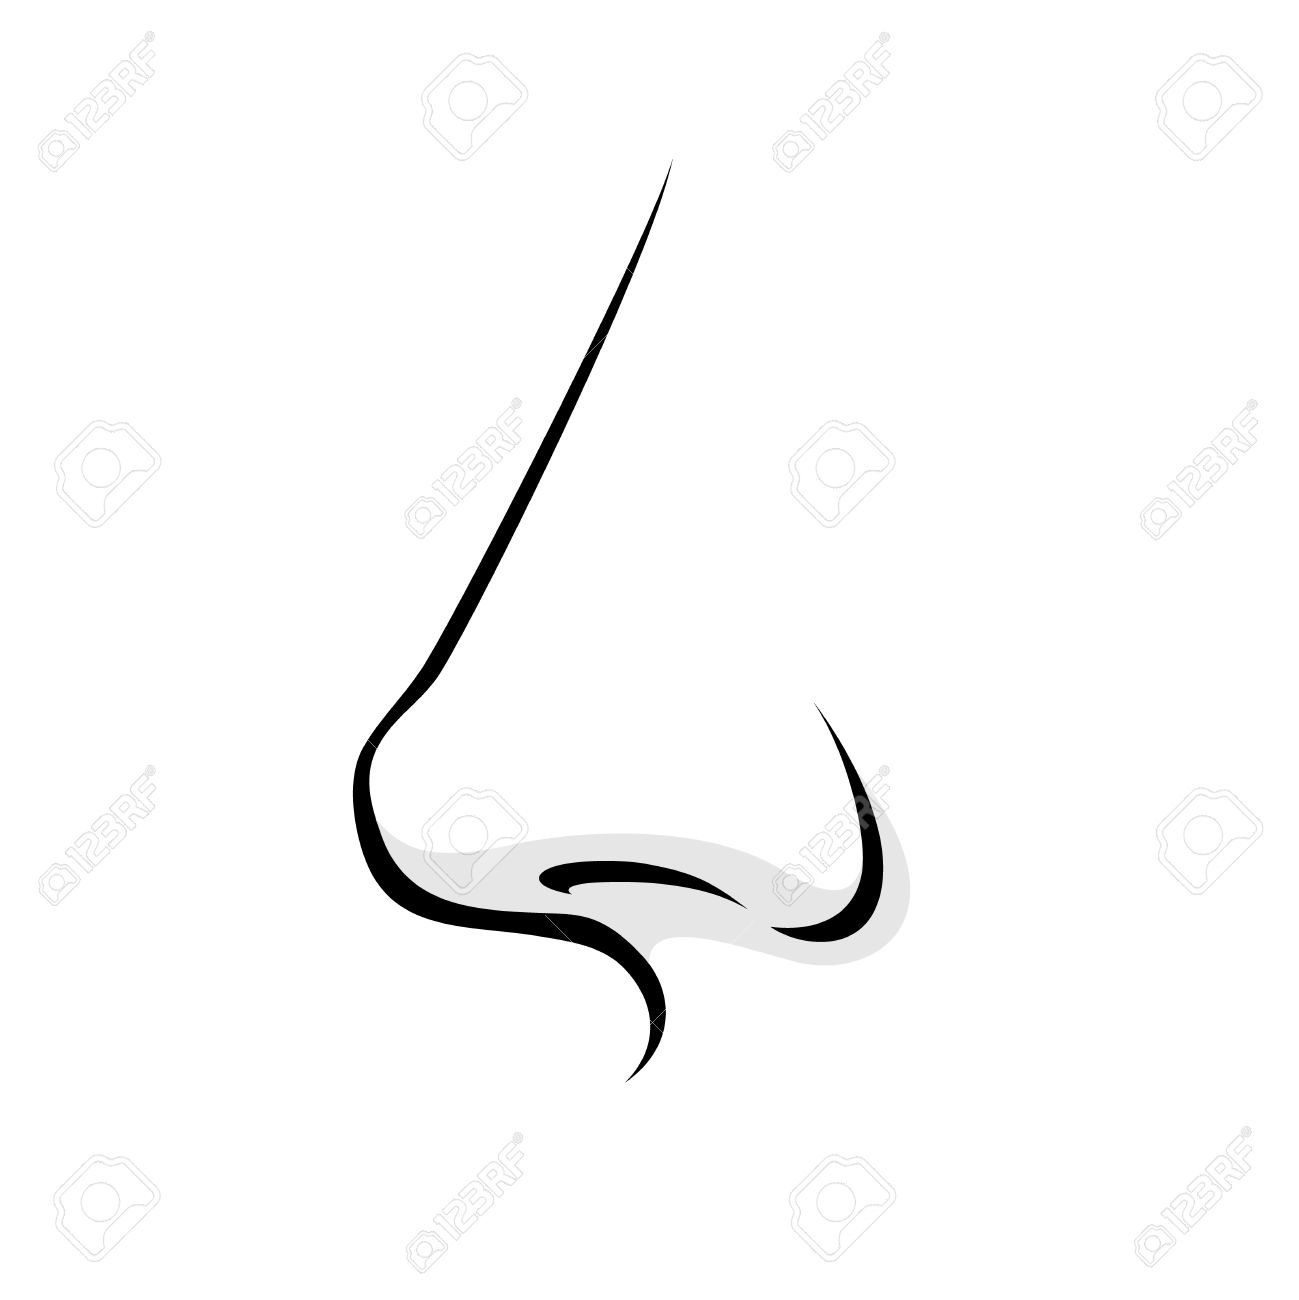 Bw x free clip. Nose clipart illustration